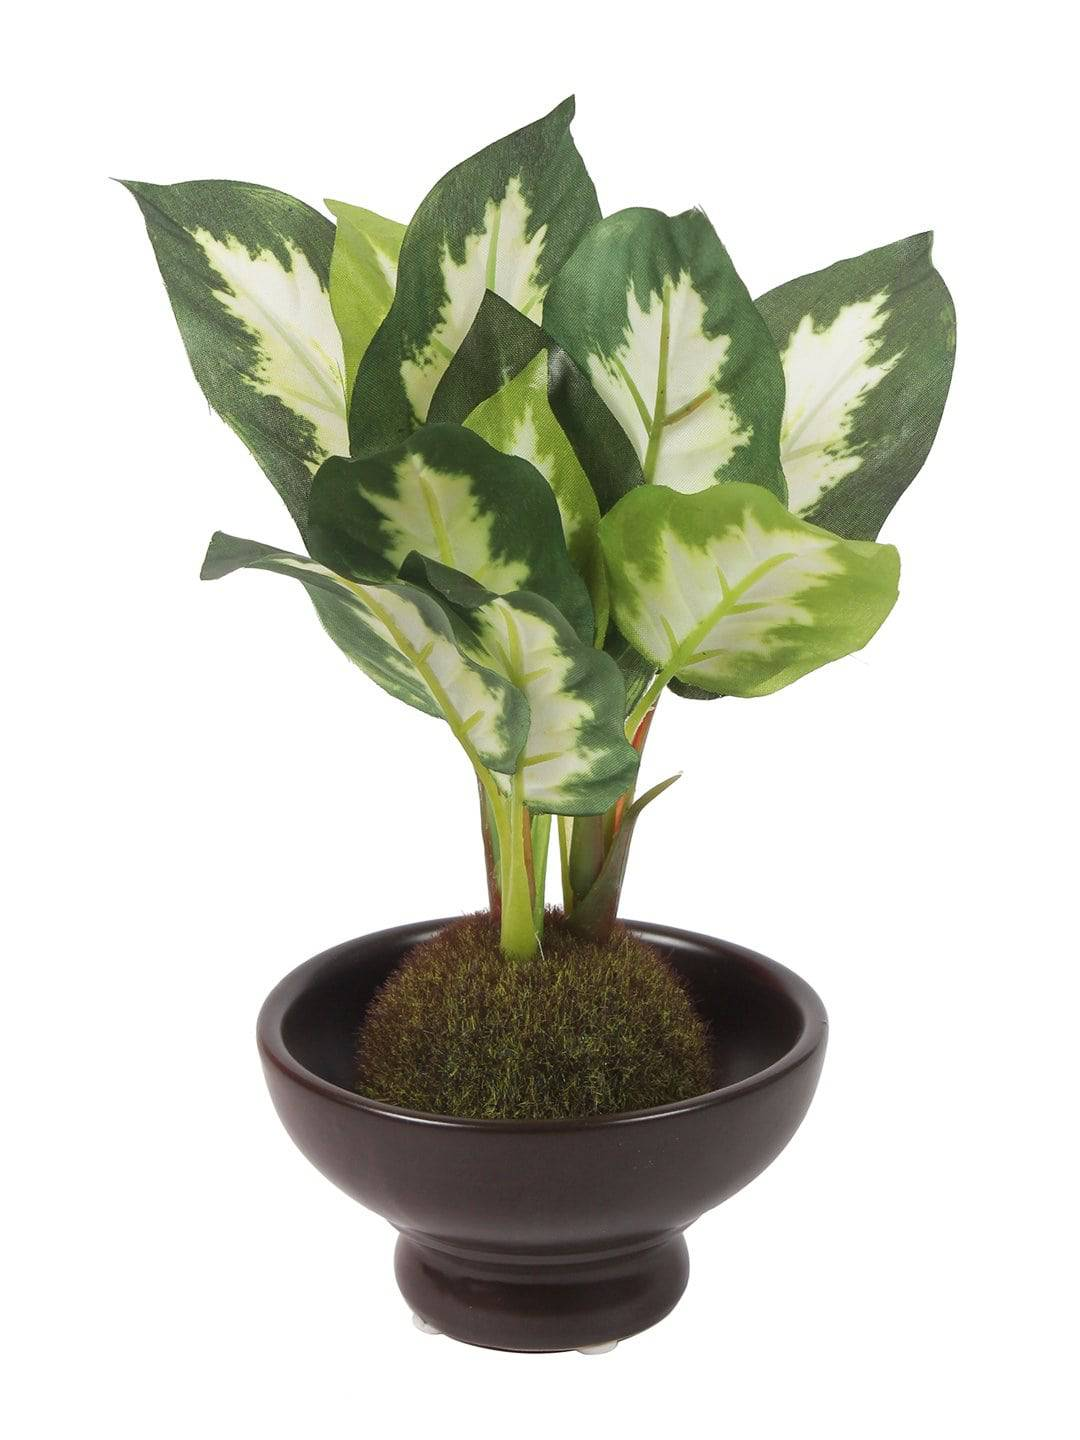 Artificial Bonsai Plant With Ceramic Pot for Home Office Garden Balcony Decoration - Artificial Flowers & Plants - PolliNation